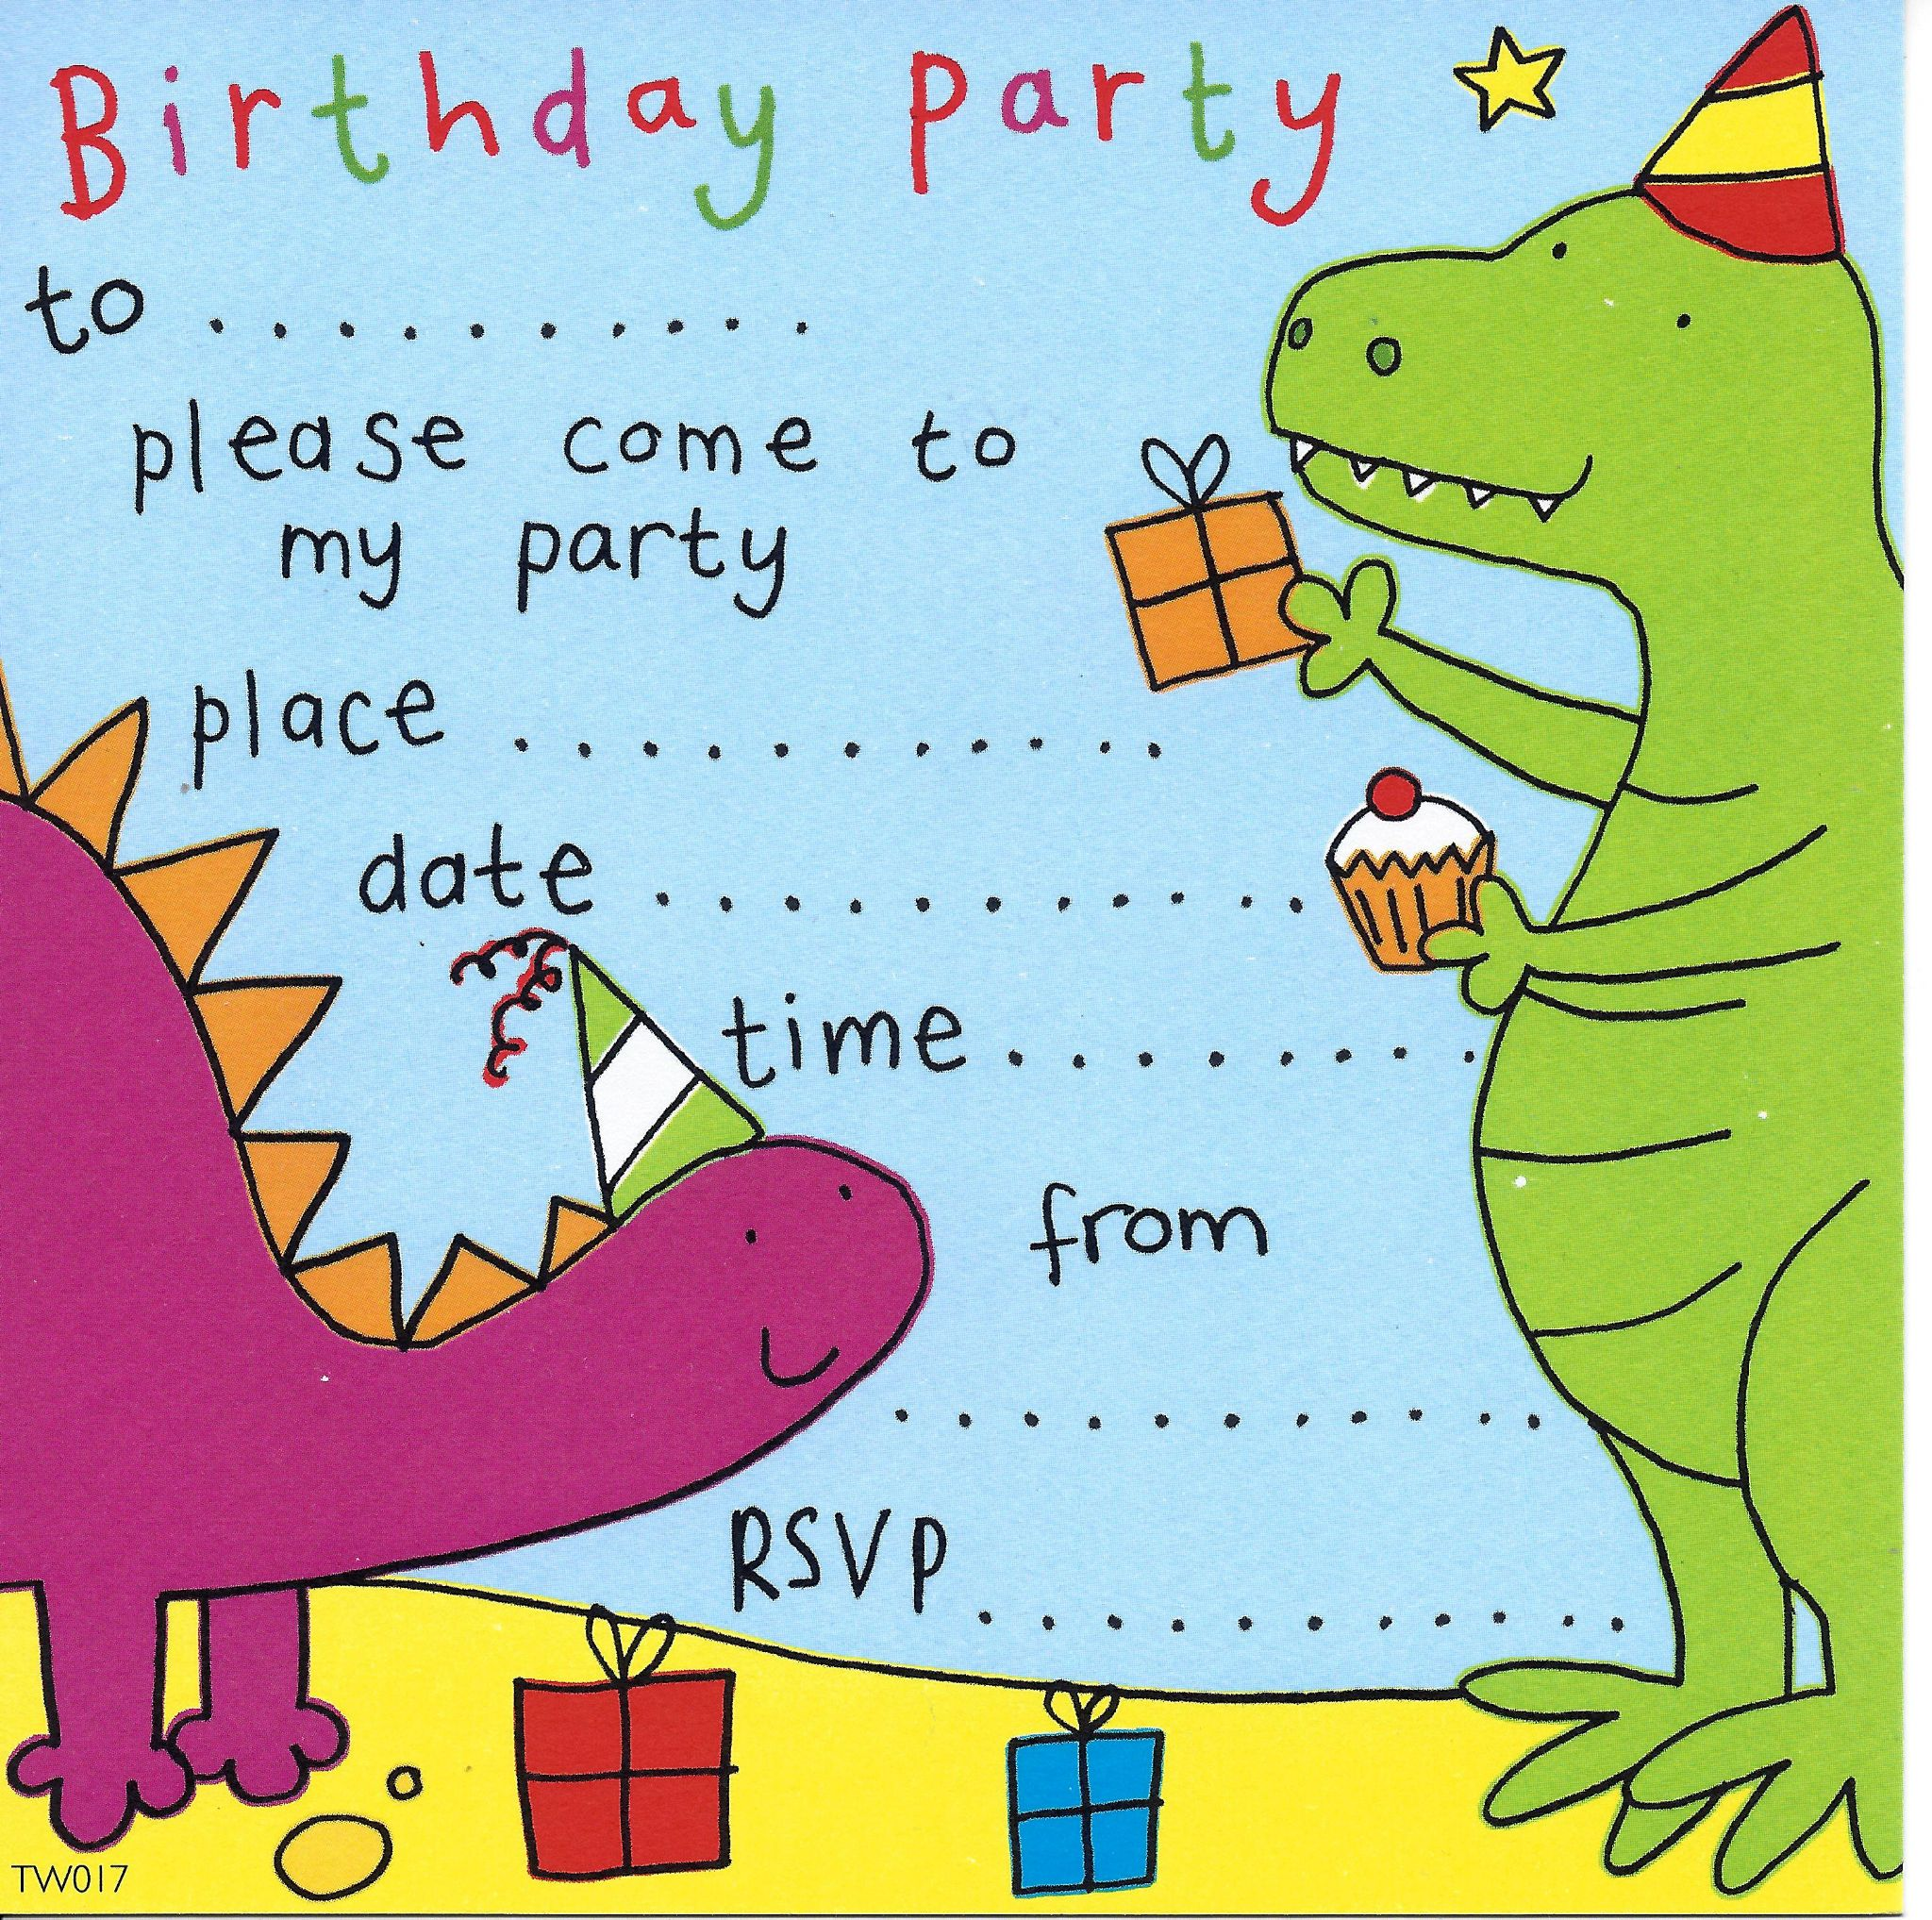 party invitations, birthday party invitations, kids party, Party invitations